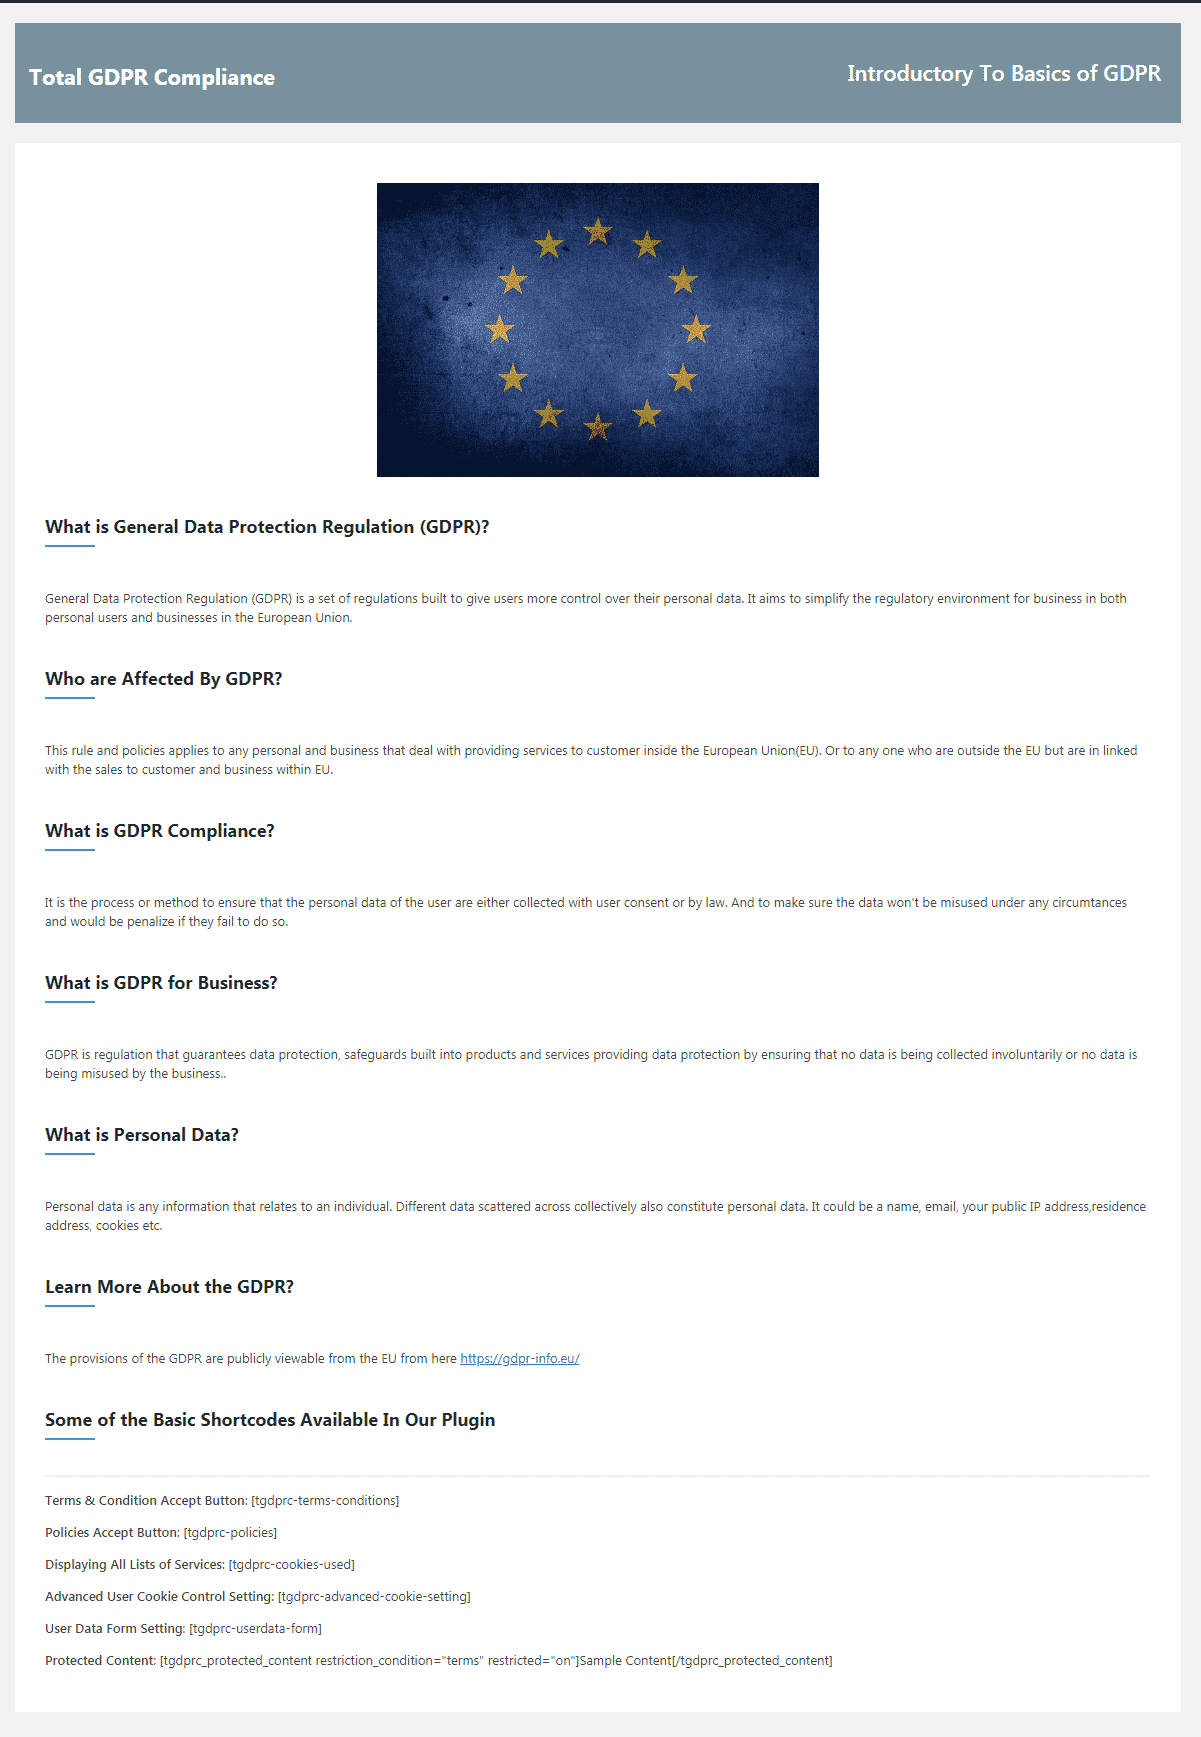 Total GDPR Compliance: About Page